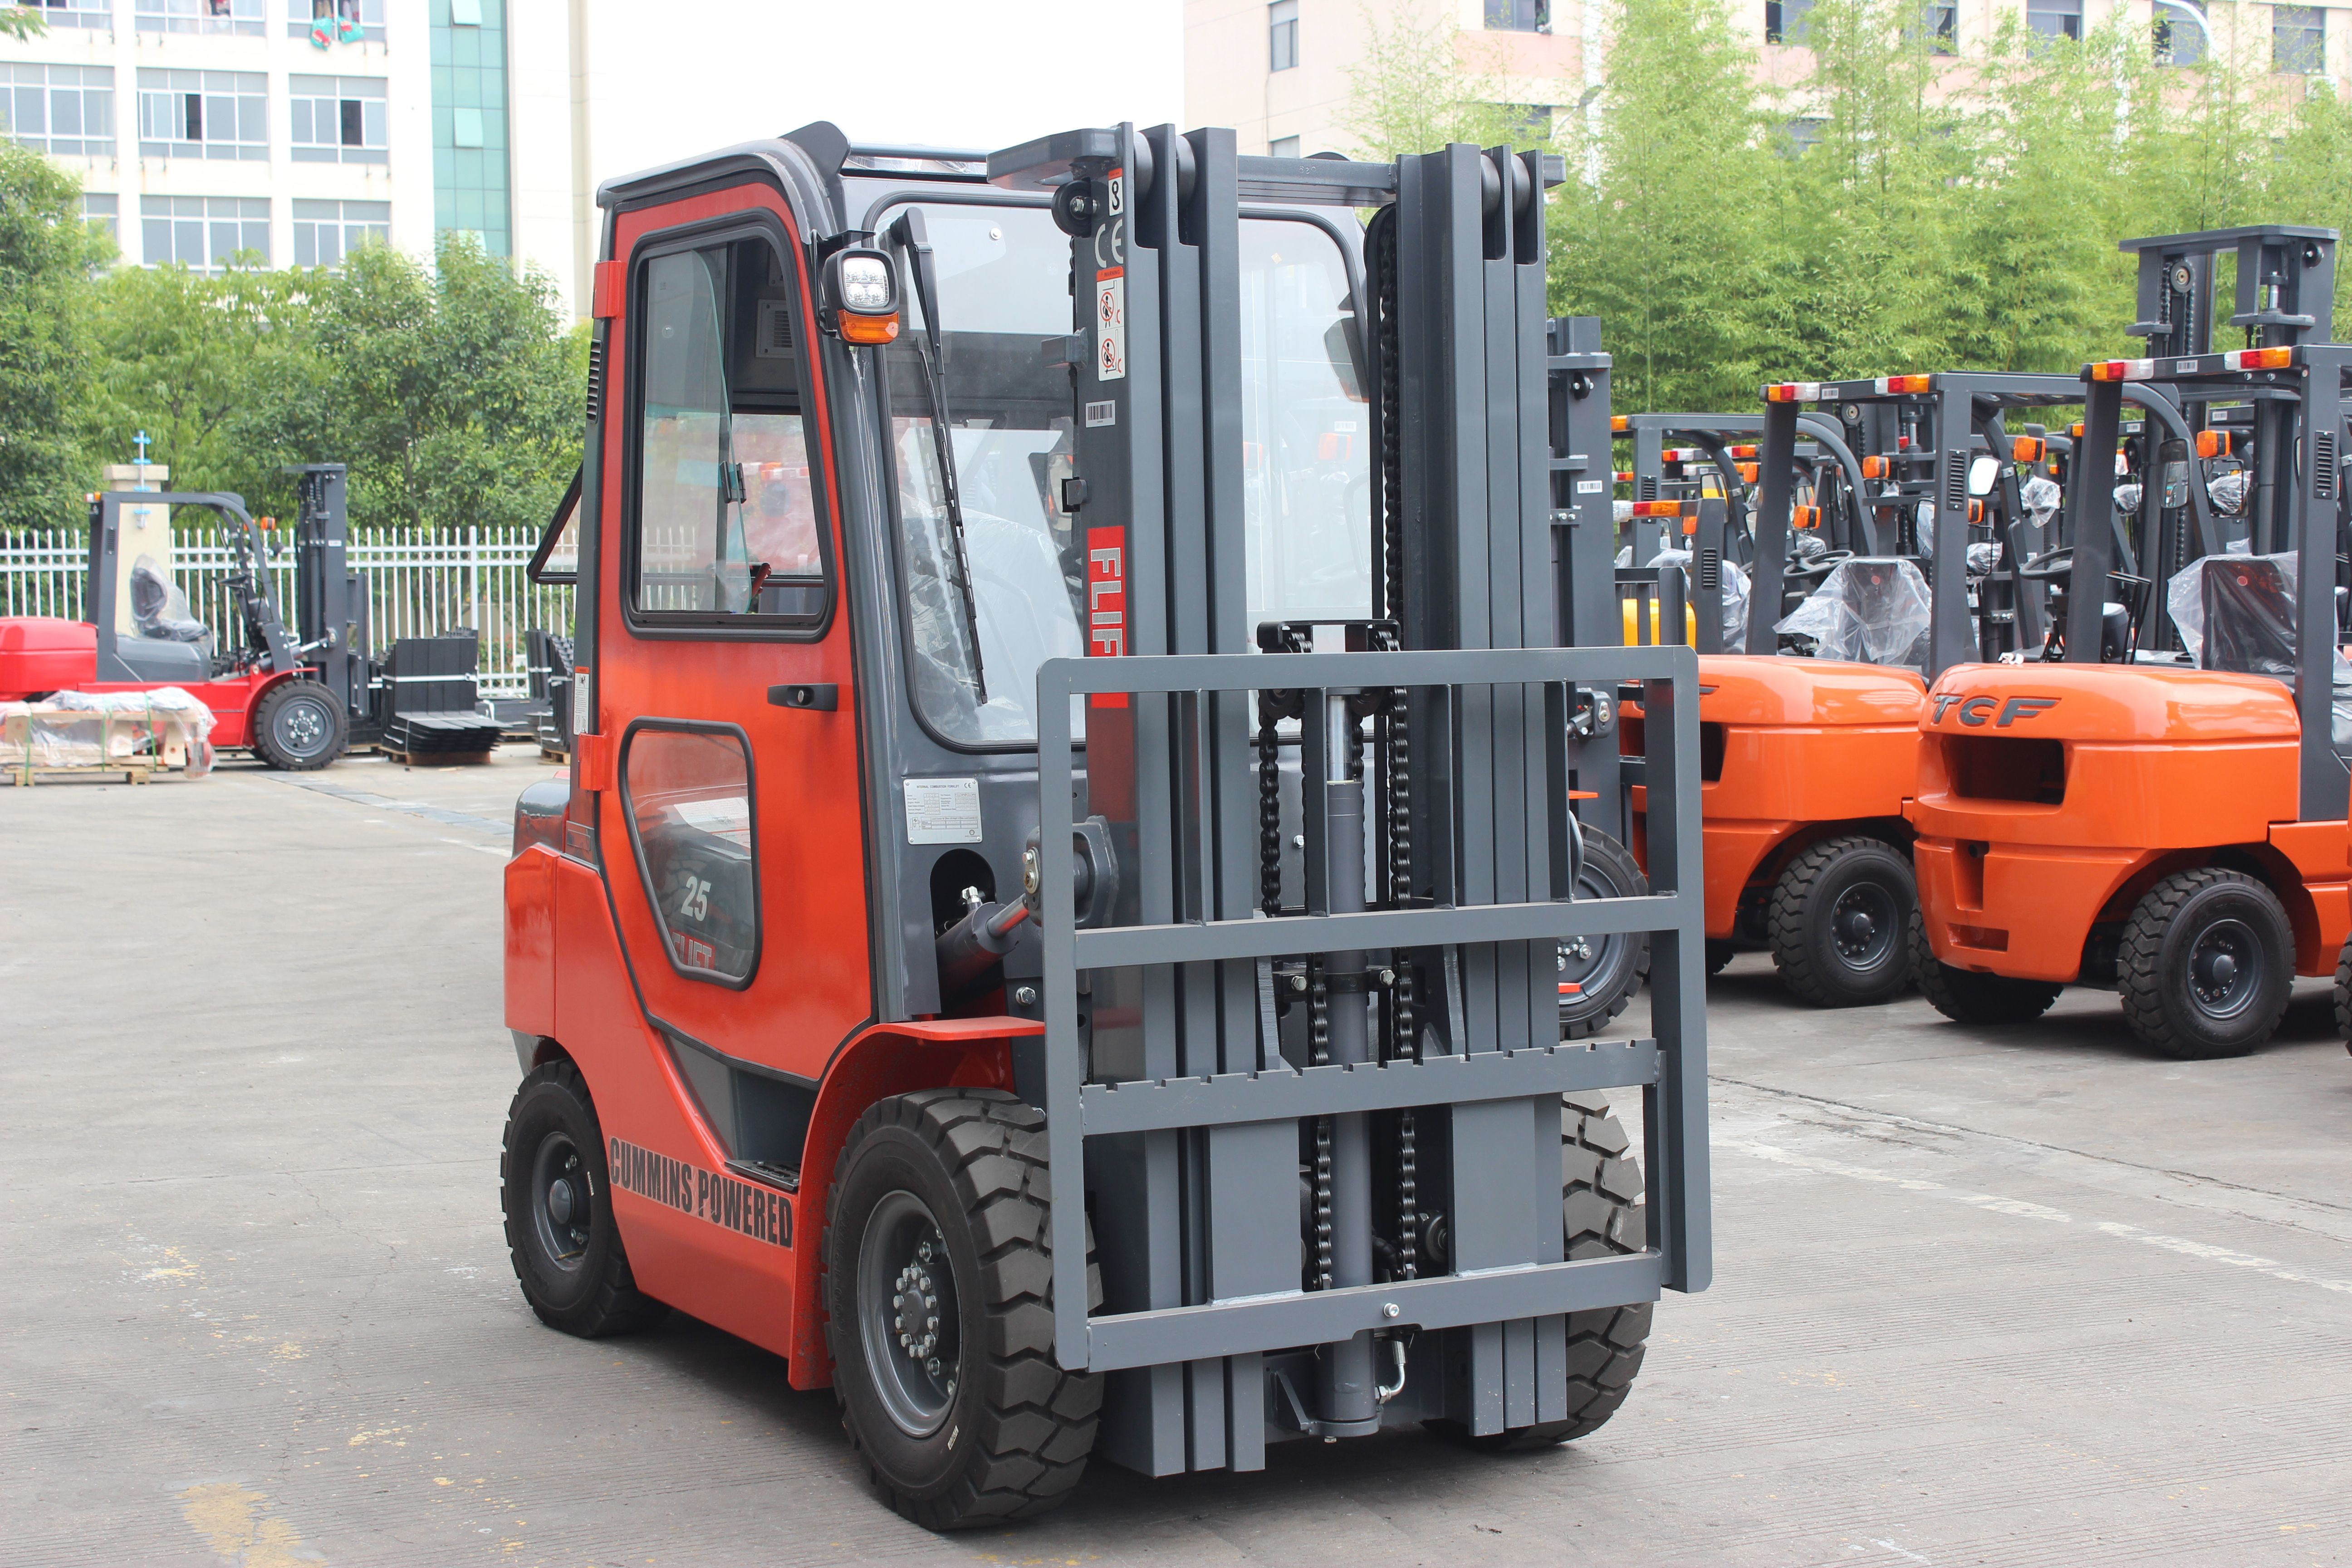 2.5ton diesel forklift with cummins engine and closed